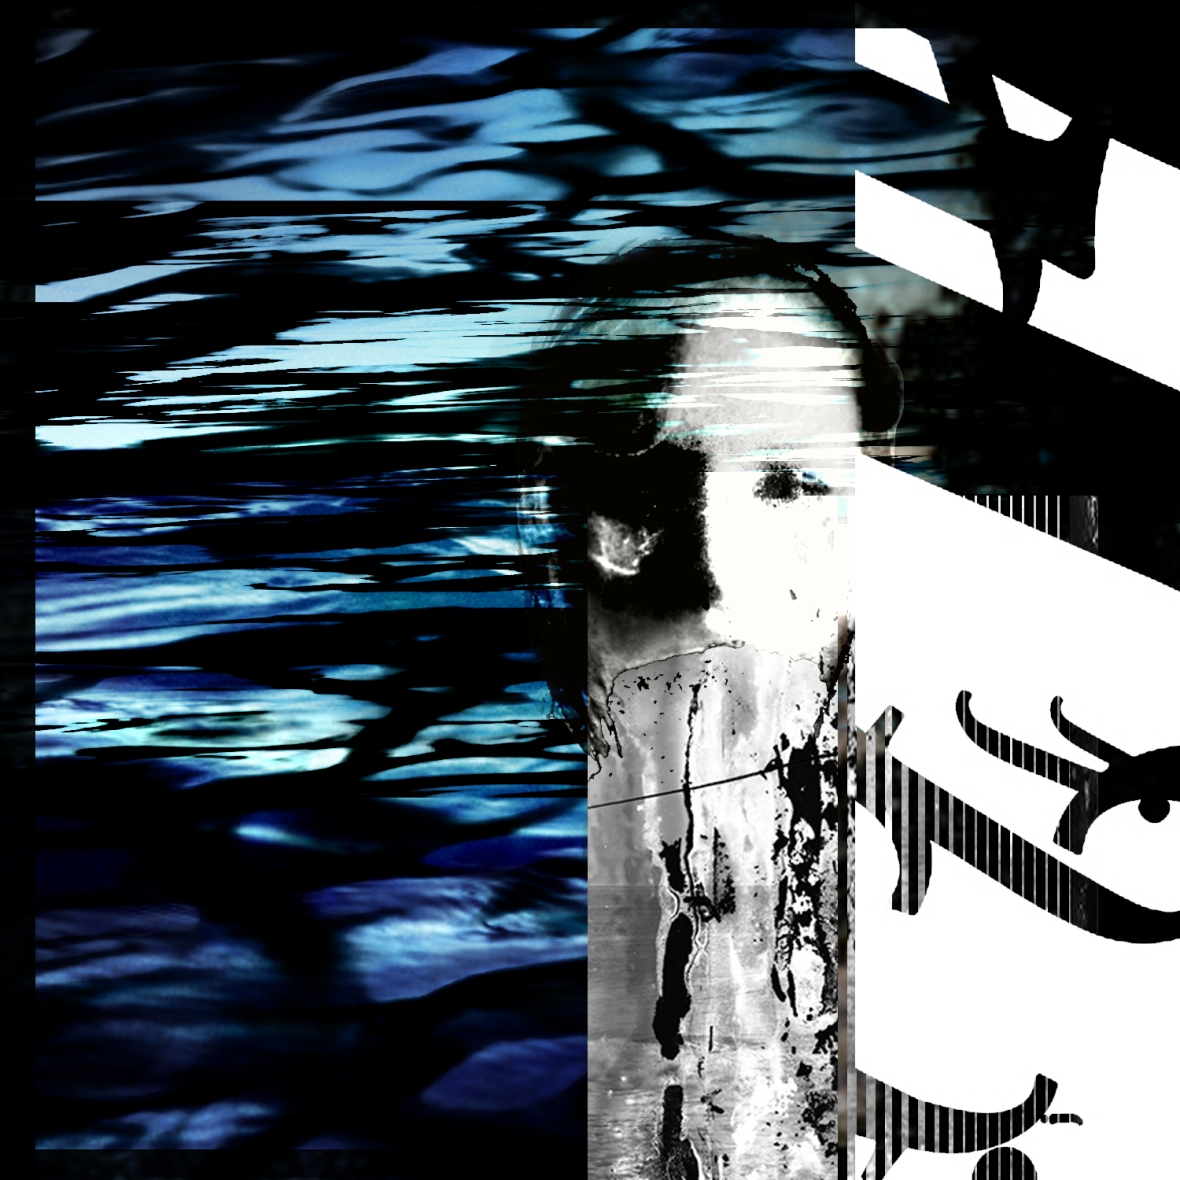 Water_Demon_Collage_062914